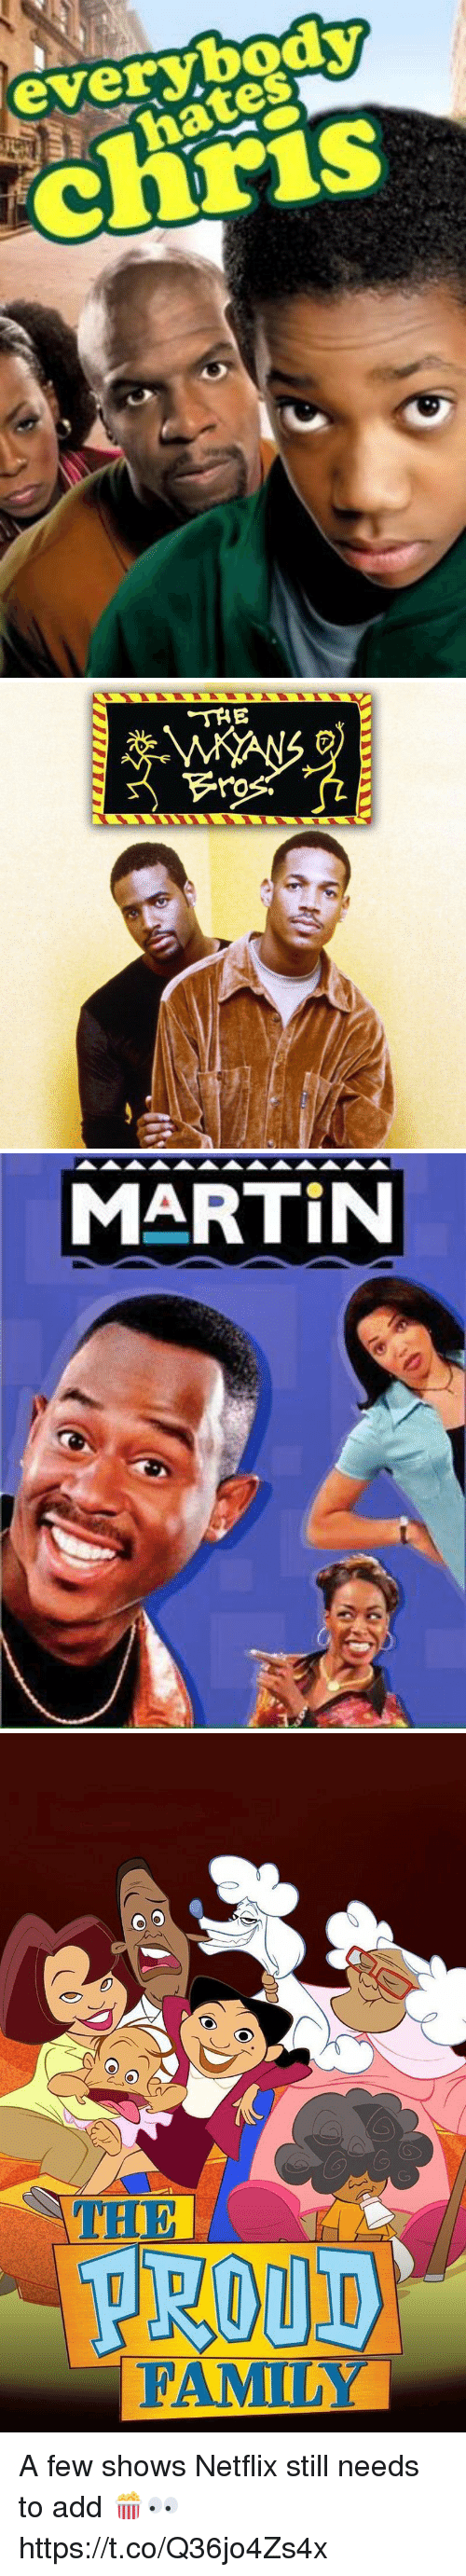 proud family: everybody  ates   THE  ro   MARTIN   O O  PROUD  FAMILY A few shows Netflix still needs to add 🍿👀 https://t.co/Q36jo4Zs4x